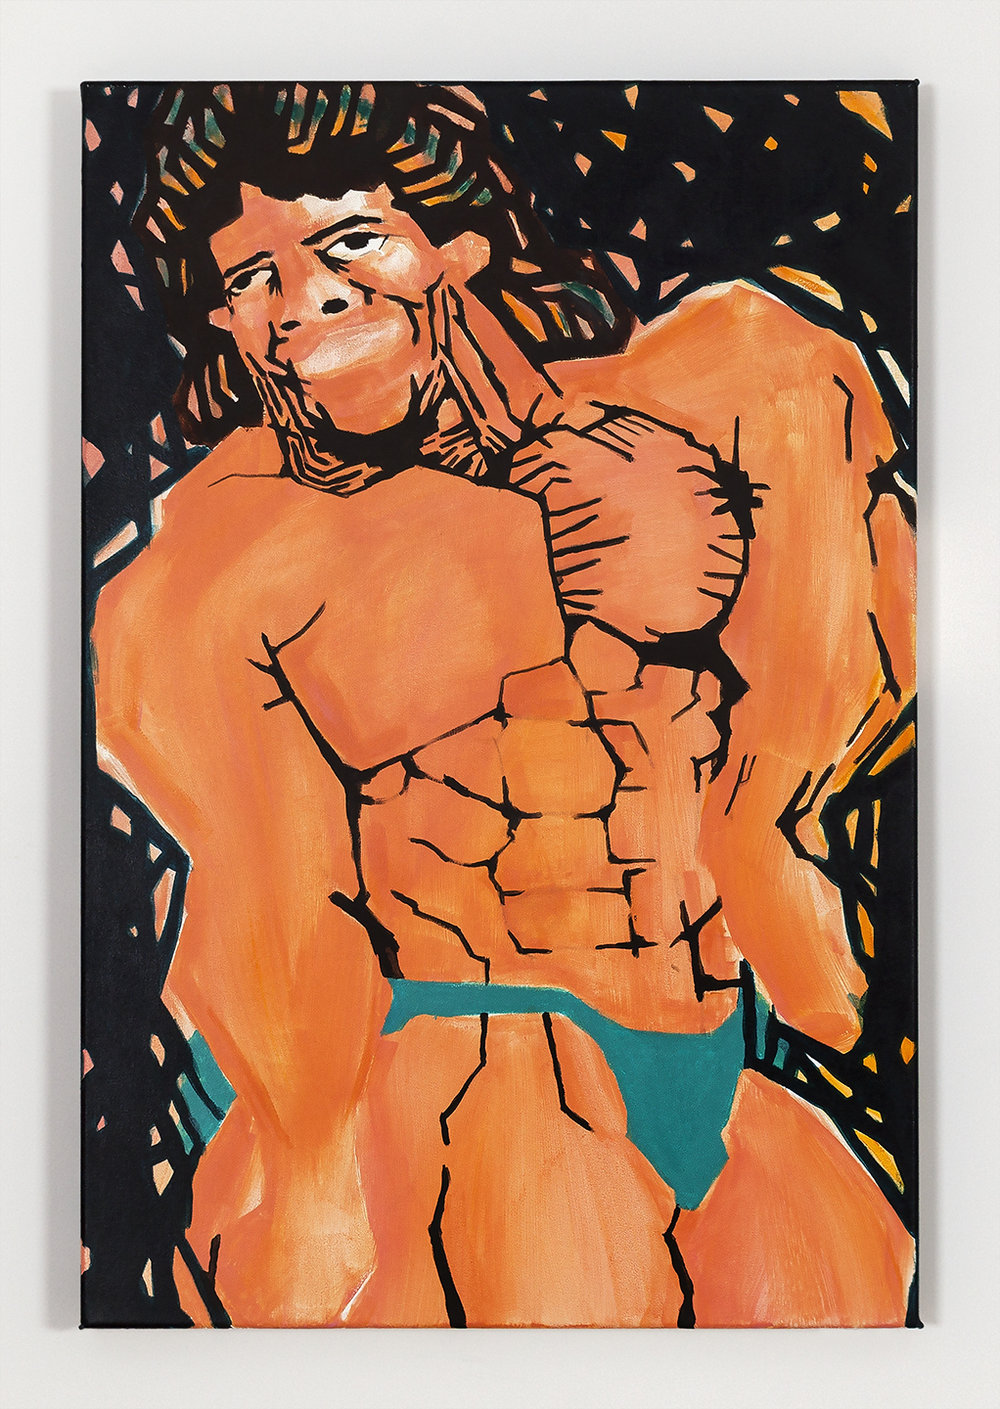 Copy of Koichi Sato Basic Muscle Pose 2, 2016 Acrylic on canvas 36h x 24w in 91.44h x 60.96w cm KS022